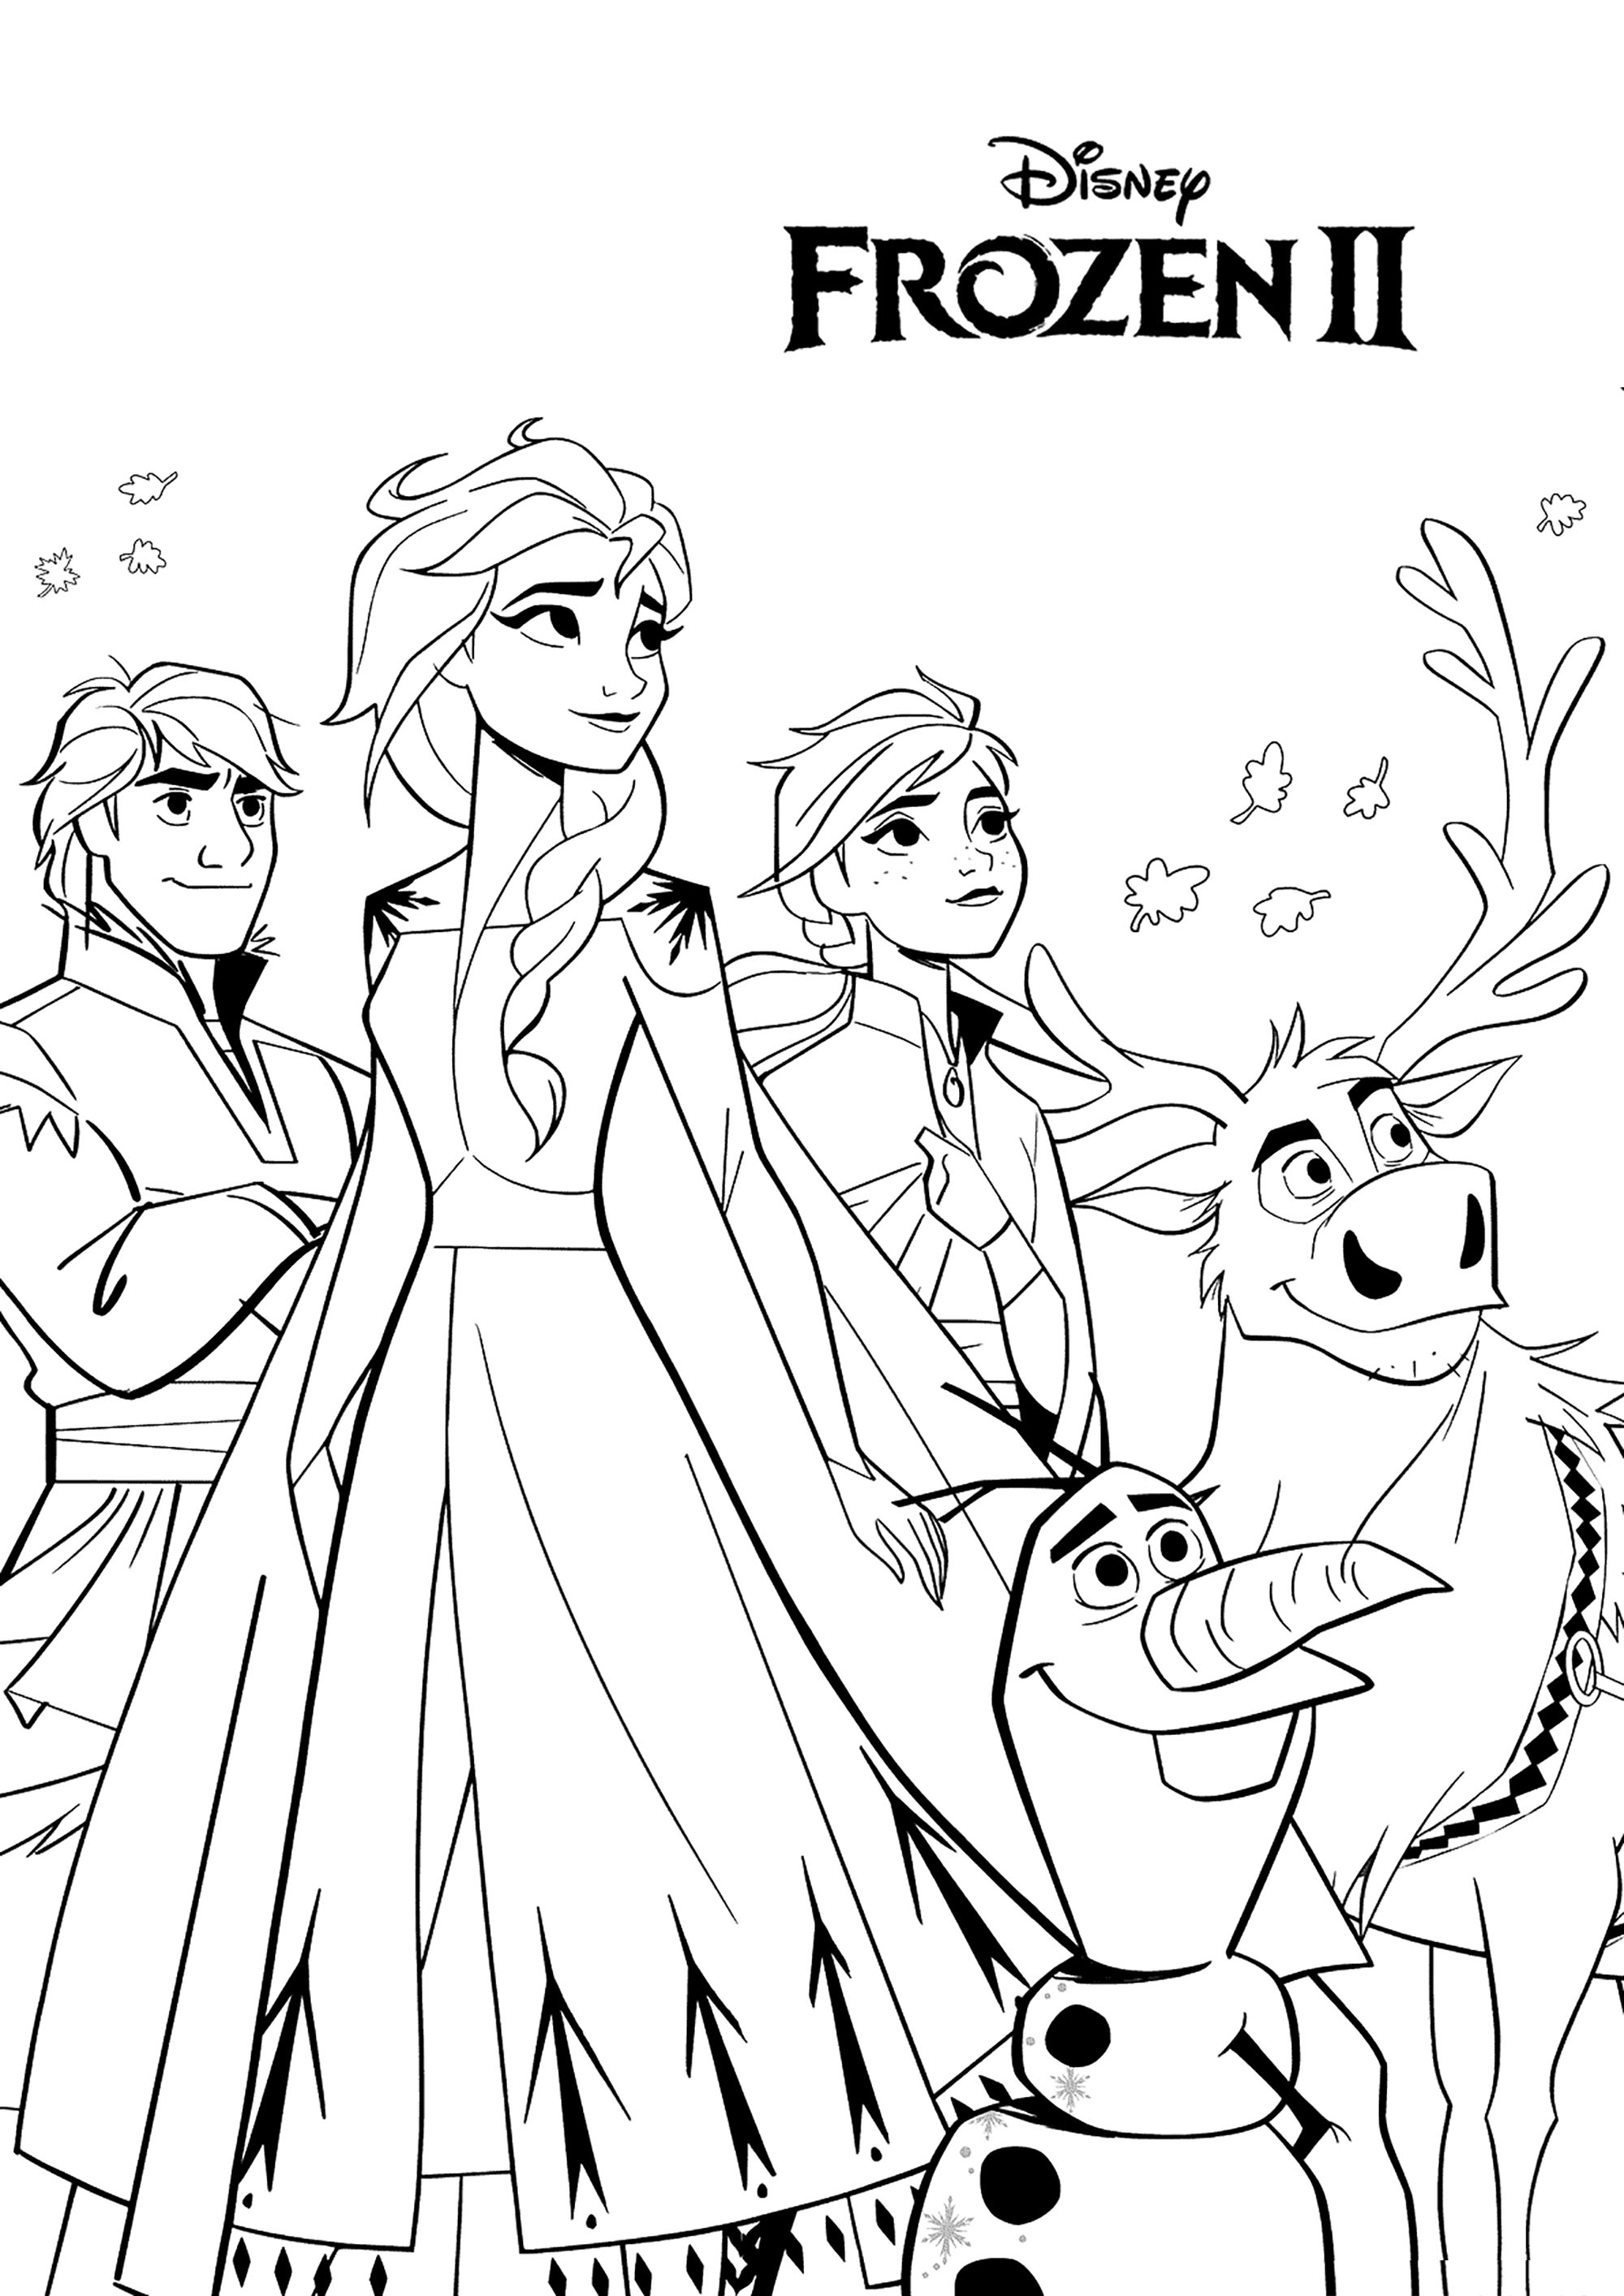 coloring pictures of frozen characters frozen coloring pages 2 disneyclipscom of characters frozen pictures coloring